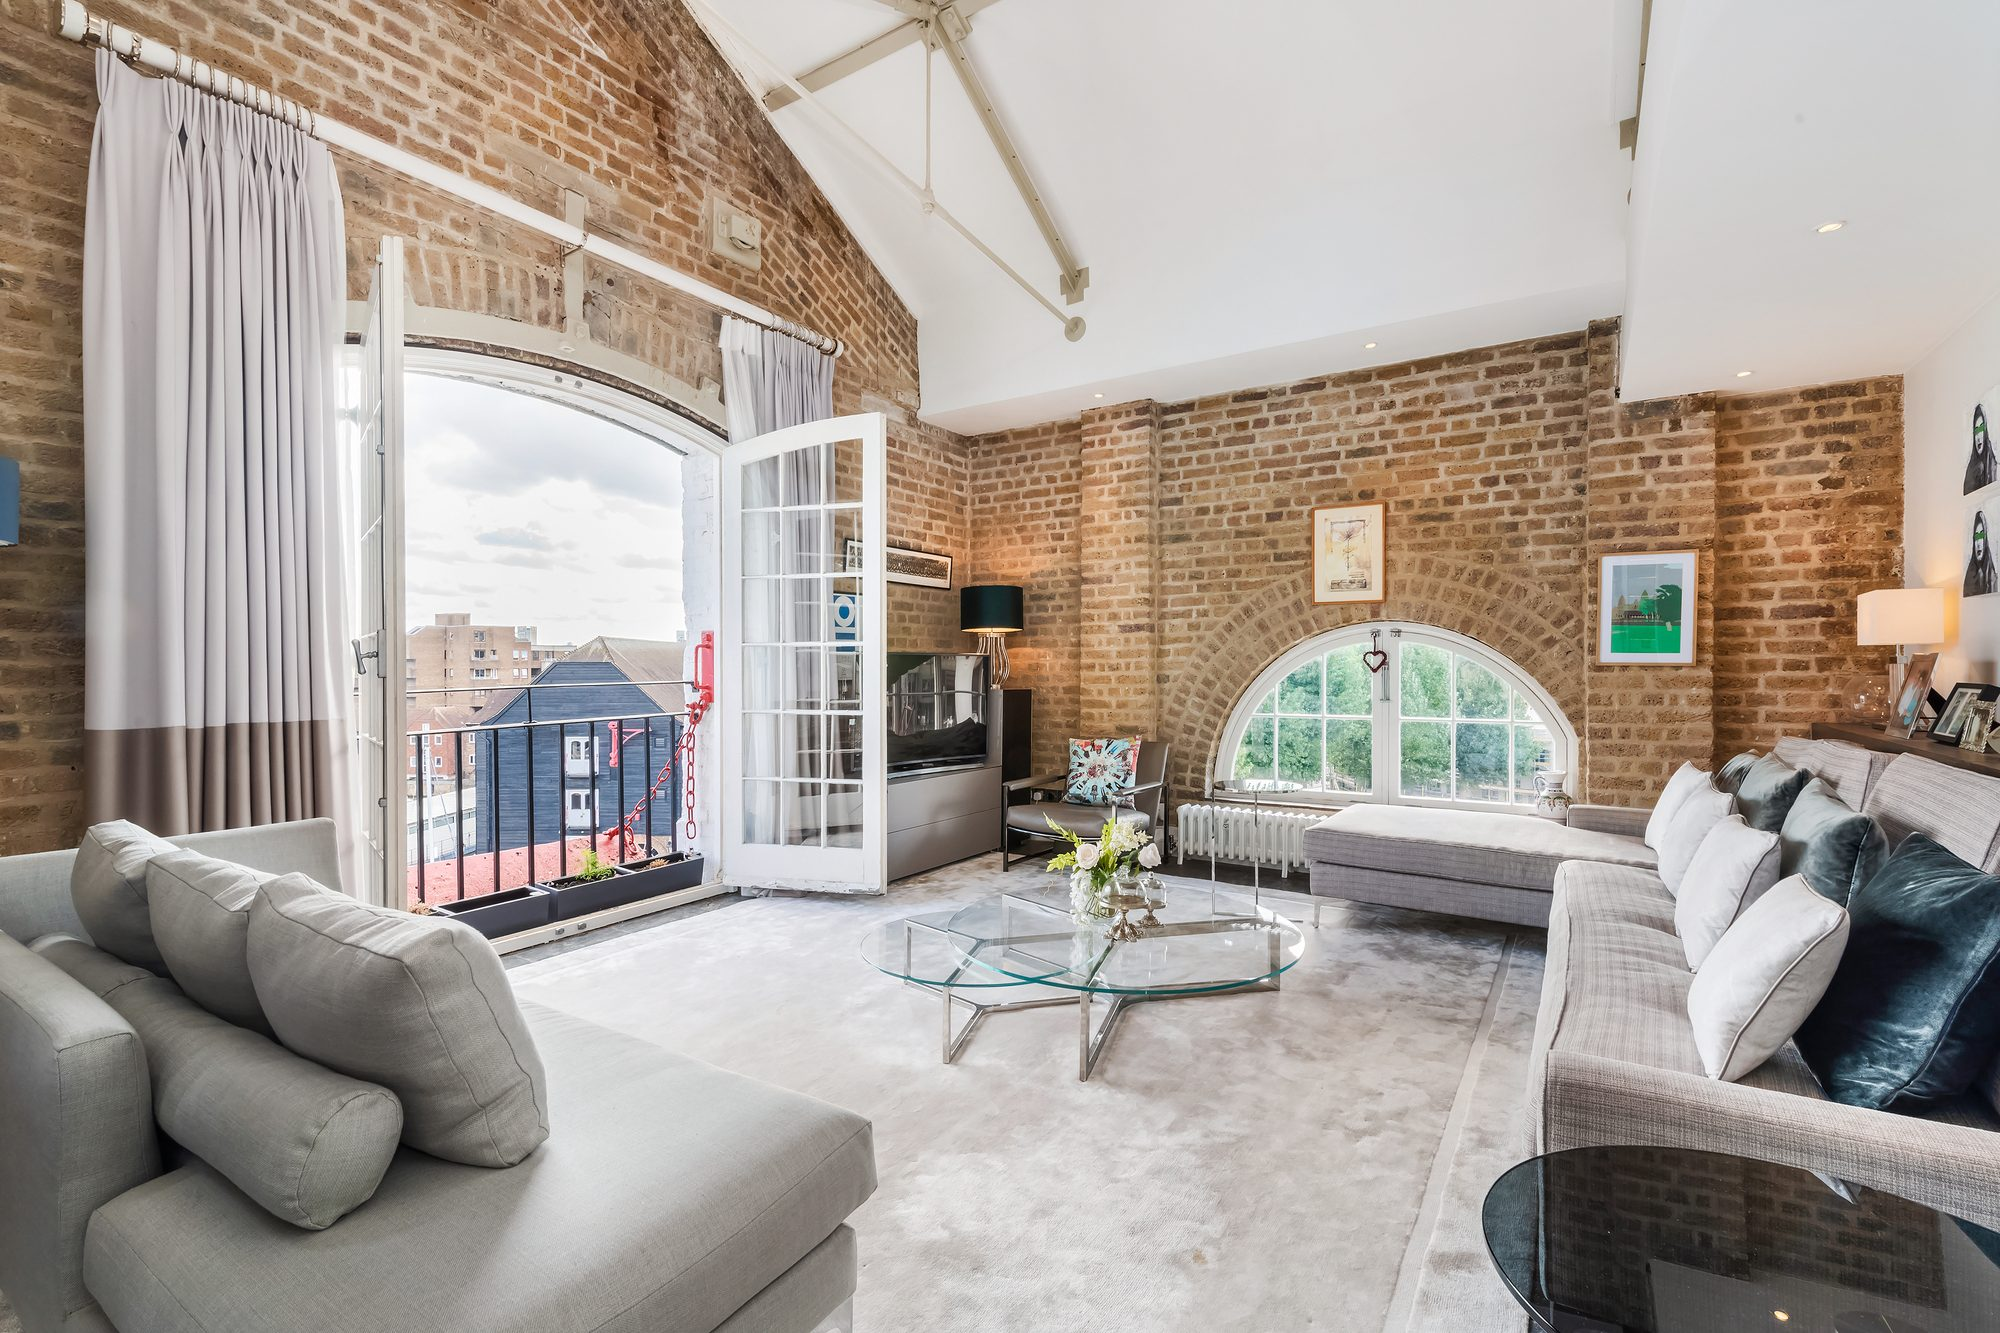 City home with brick walls and a vaulted ceiling.